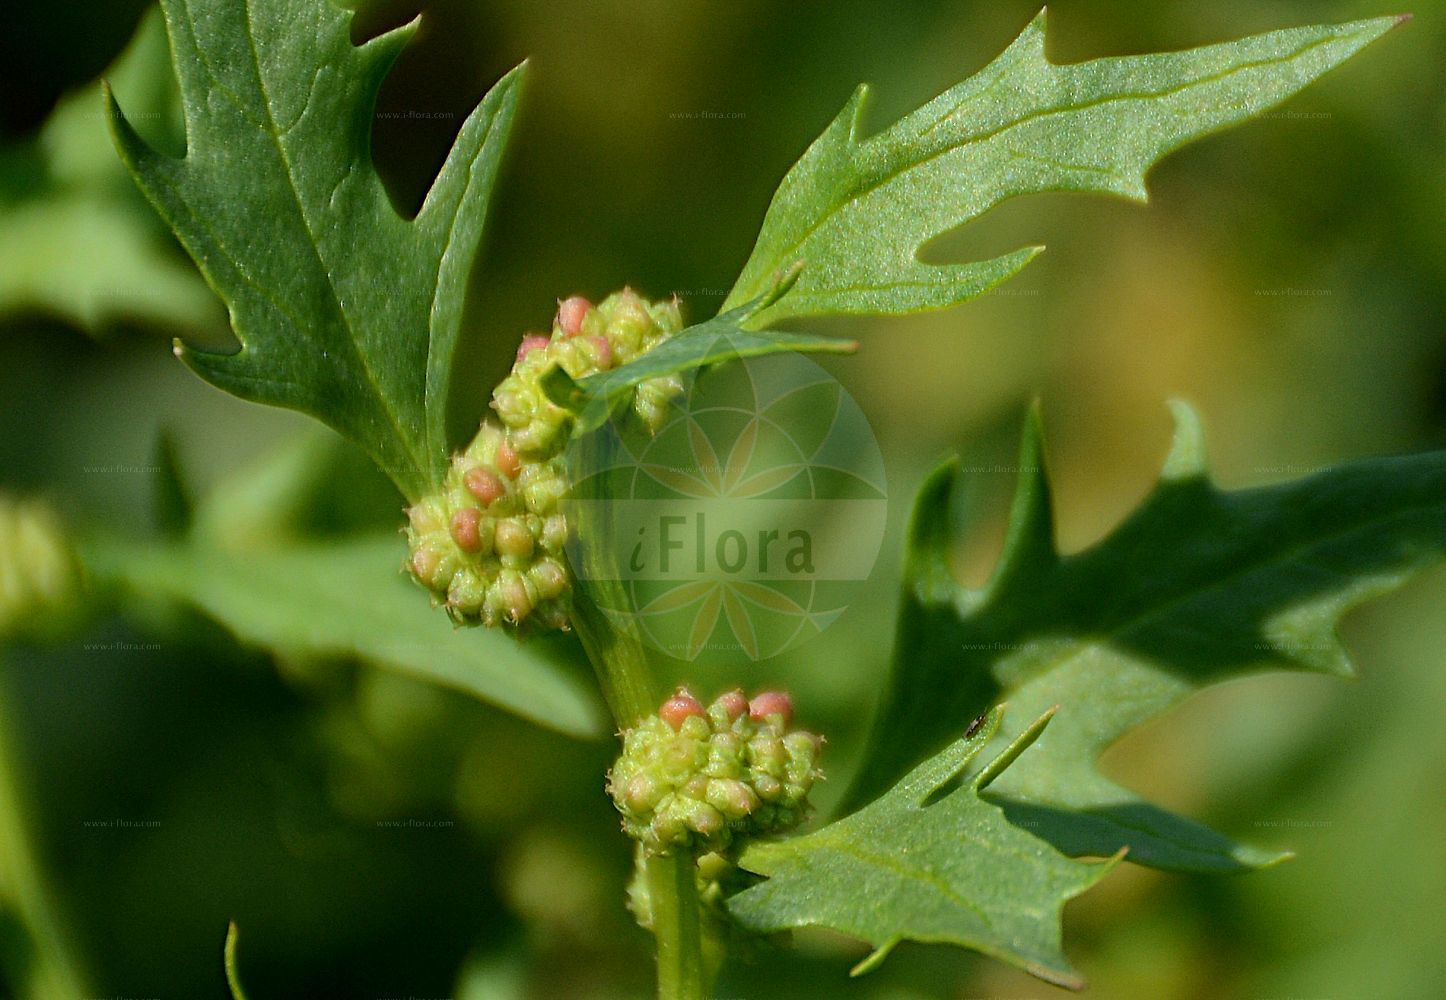 Foto von Blitum virgatum (Echter Erdbeerspinat - Strawberry Goosefoot). ---- Photo of Blitum virgatum (Echter Erdbeerspinat - Strawberry Goosefoot).(Blitum virgatum,Echter Erdbeerspinat,Strawberry Goosefoot,Chenopodium foliosum,Chenopodium virgatum,Morocarpus foliosus,Durchblaetterter Gaensefuss,Strawberry Blite,Leafy Goosefoot,Blitum,Amaranthaceae,Fuchsschwanzgewaechse,Pigweed family)